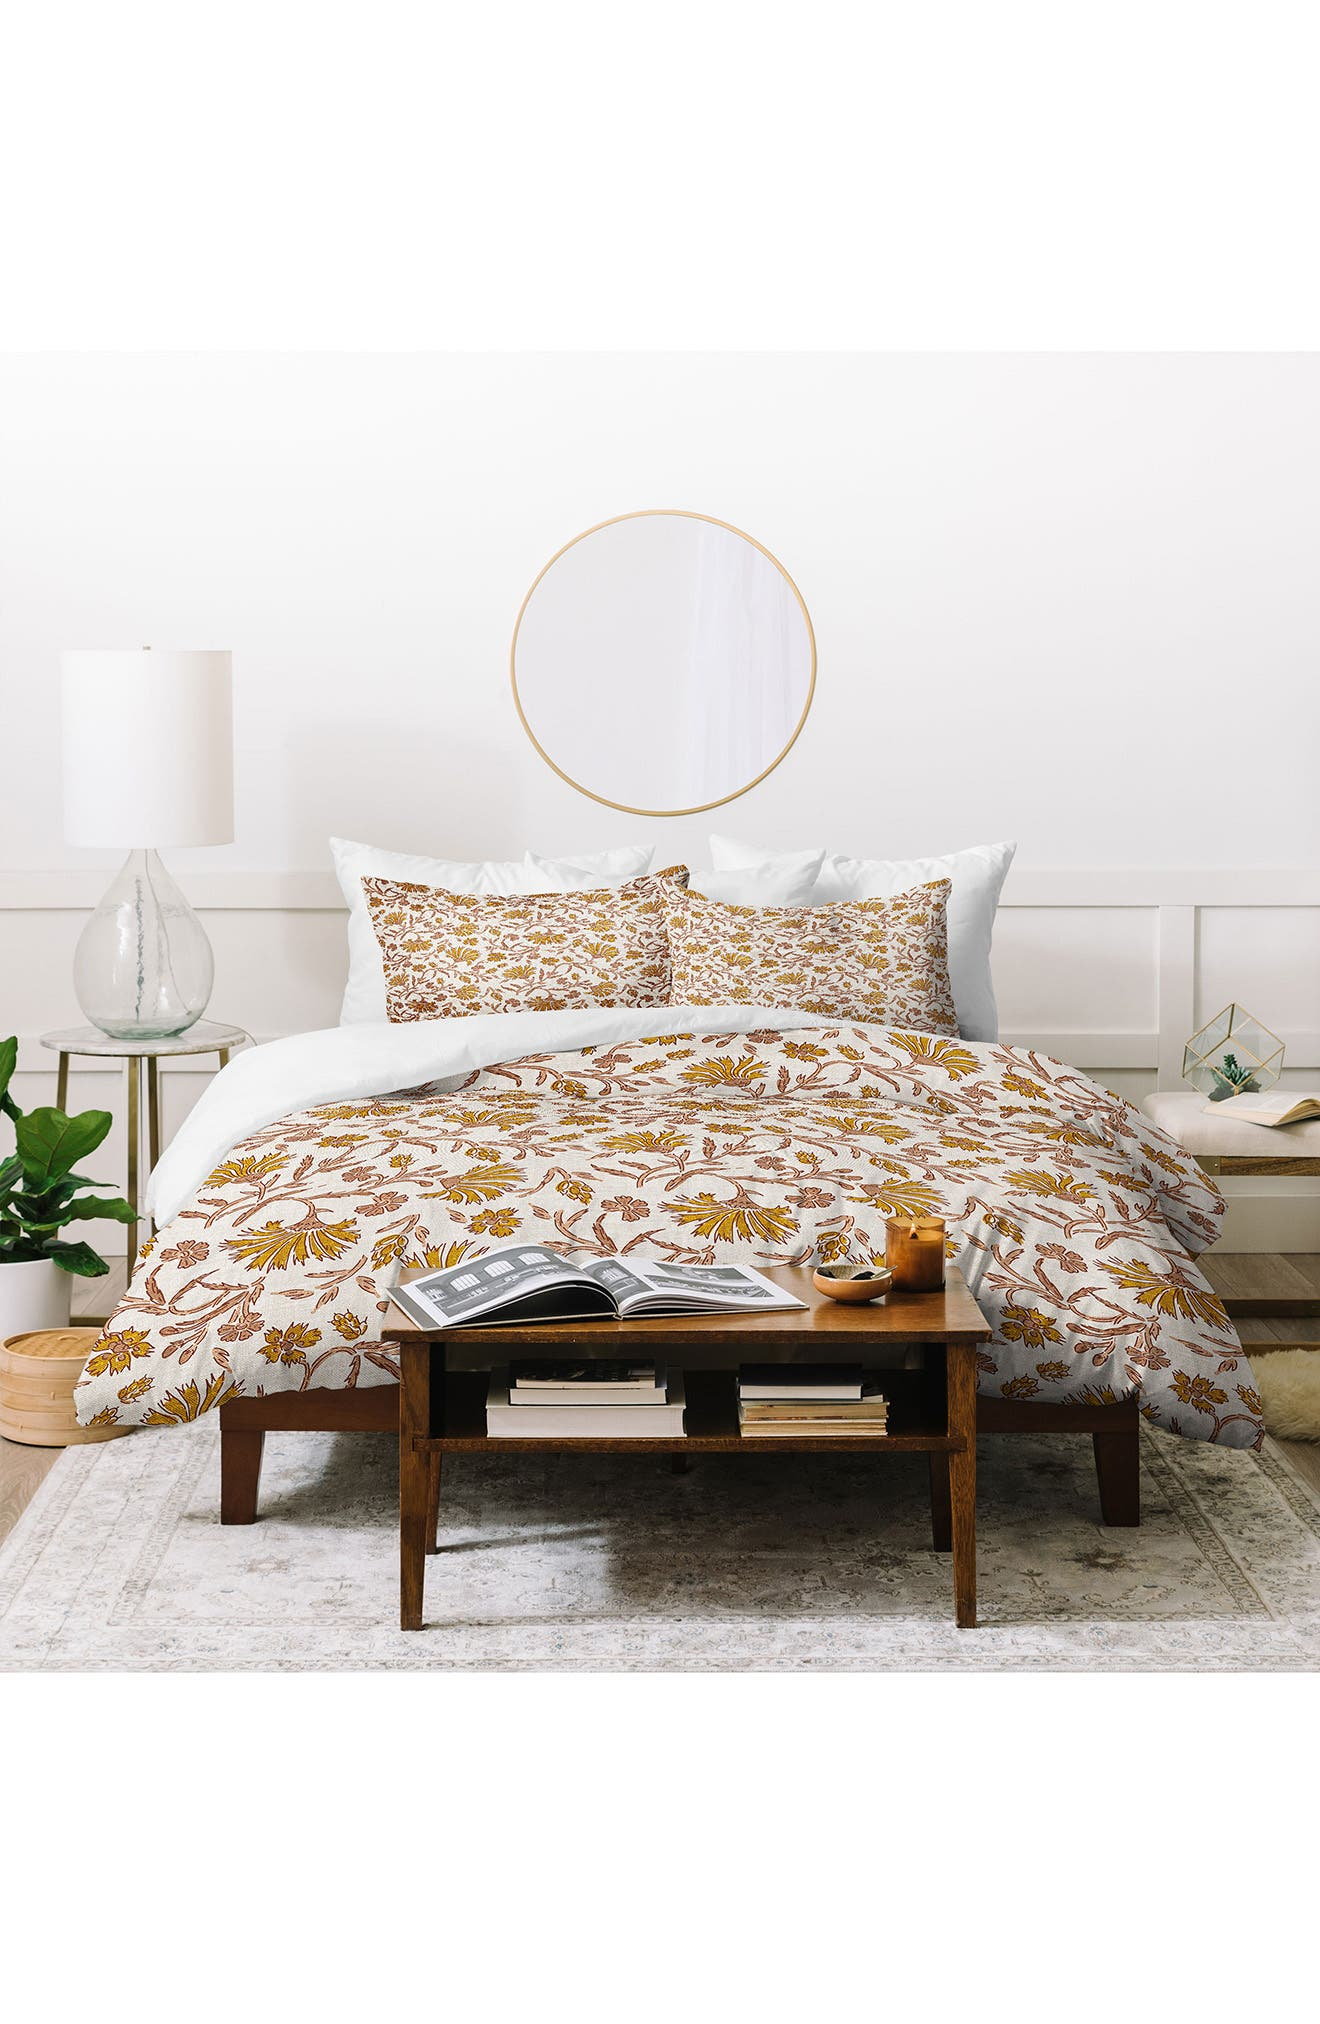 Sunny-hued flowers pattern a standout duvet-cover set that will bring instant eye-catching style to your bedroom. Style Name: Deny Designs Floral Duvet Cover & Sham Set. Style Number: 6083329. Available in stores.